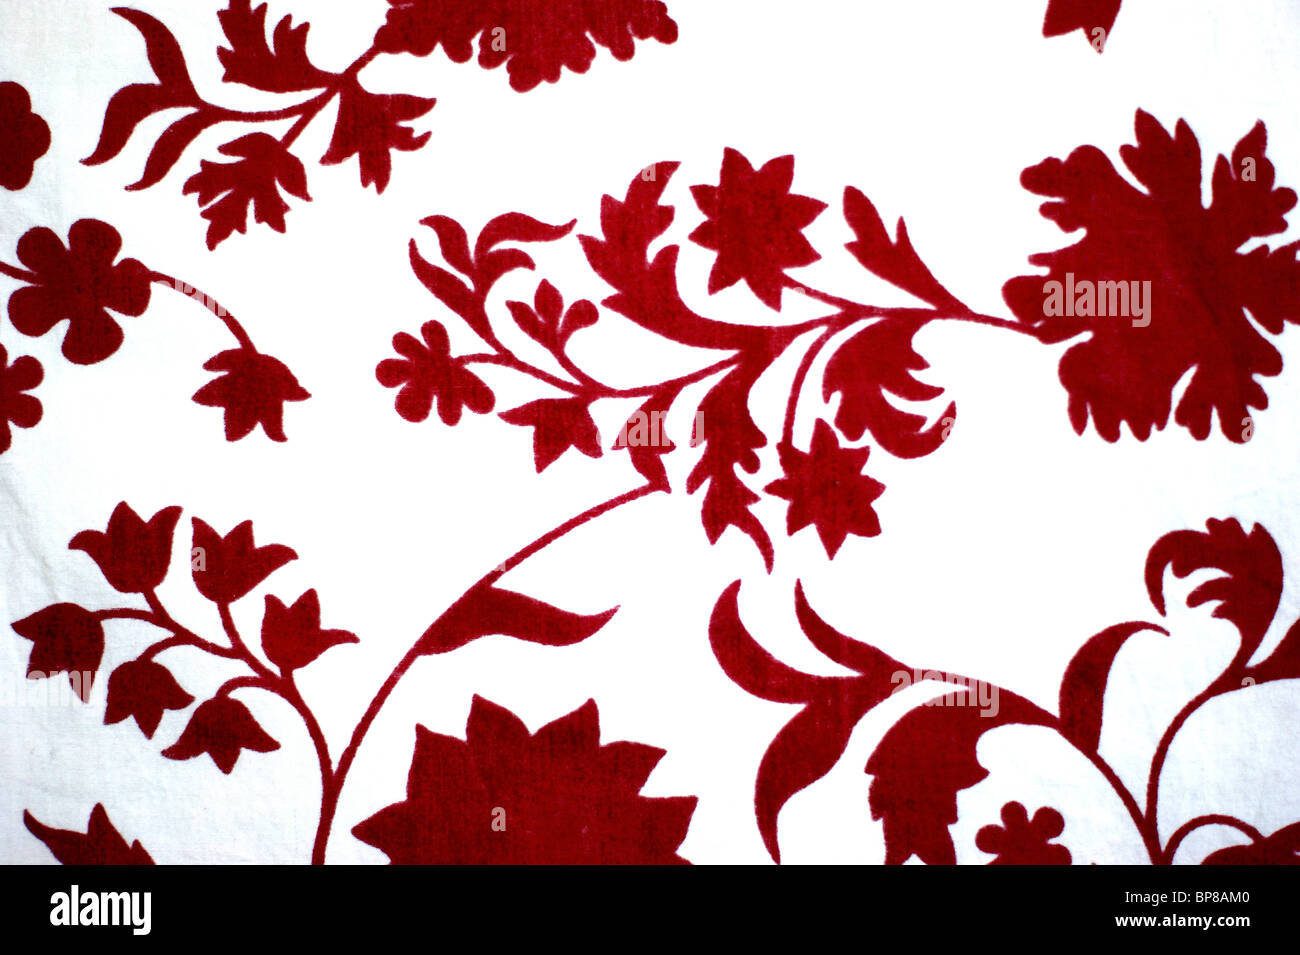 Solid Red Floral Pattern On White Background